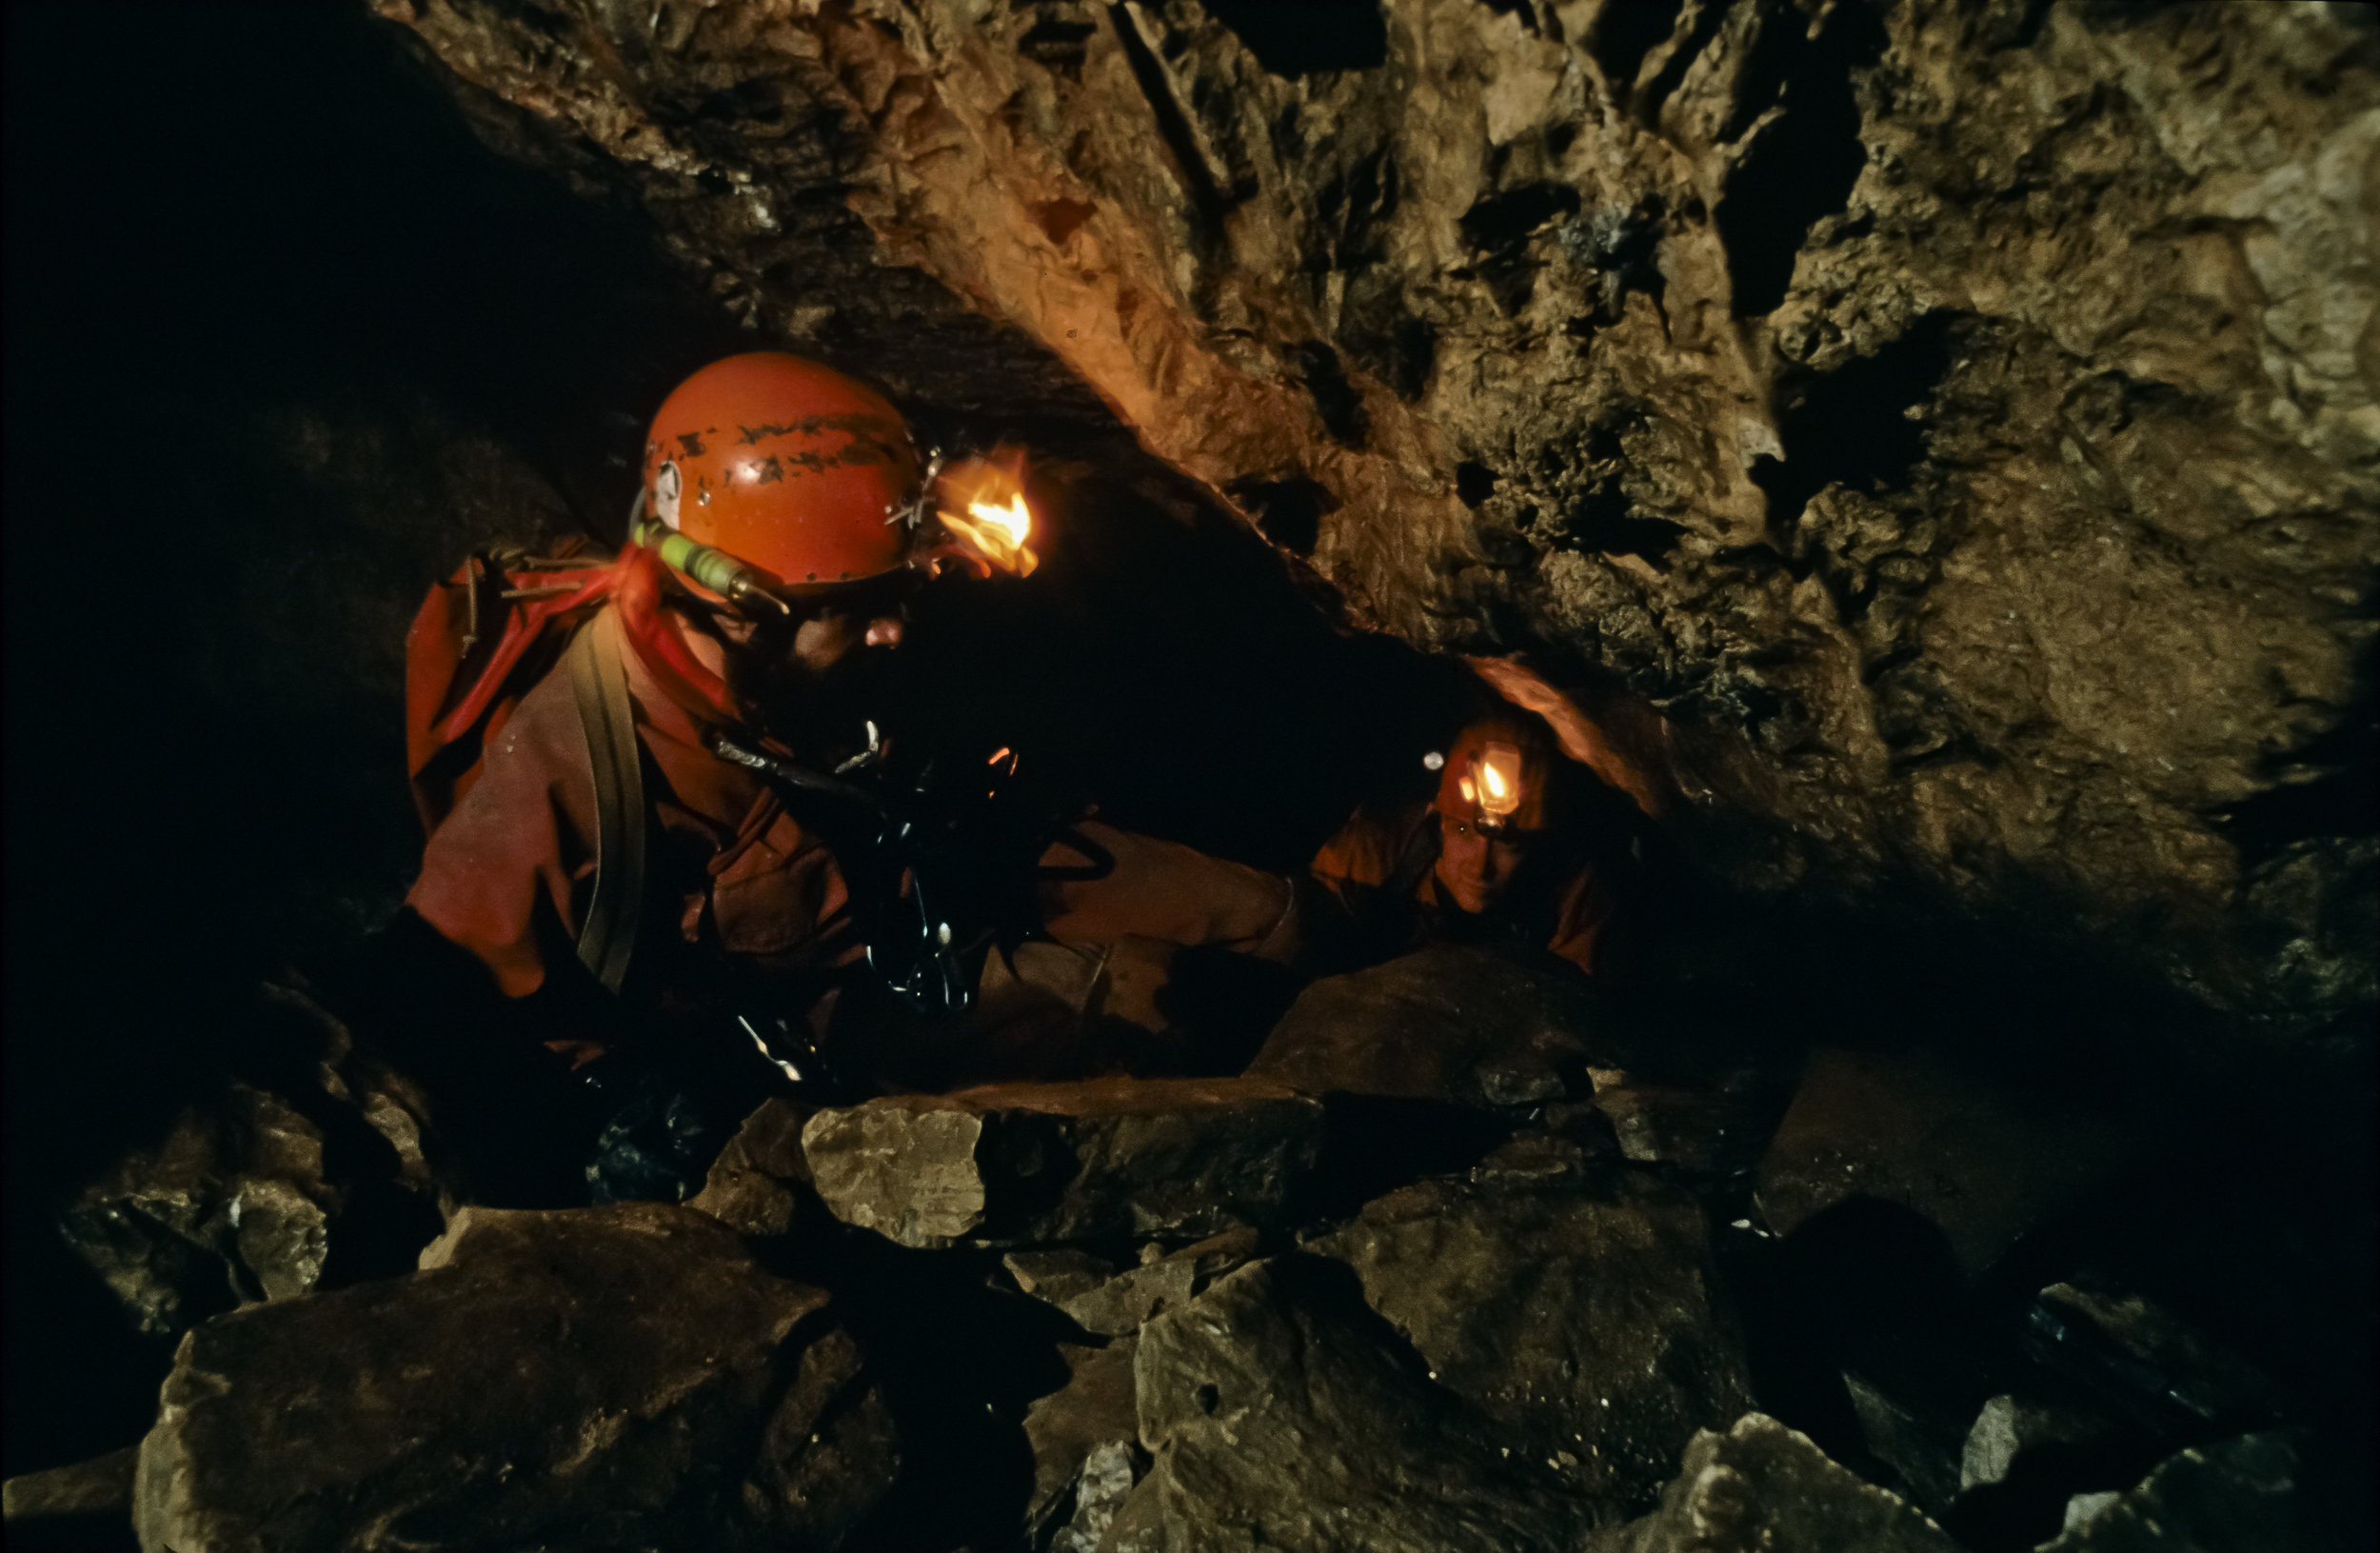 Shortly beyond the entrance shaft a new passage - the Fool's Day Extension, discovered by Mark Minton and Bill Steele in 1988 - leads to a series of constrictions. Photo by U. S. Deep Caving Team/Wes Skiles.